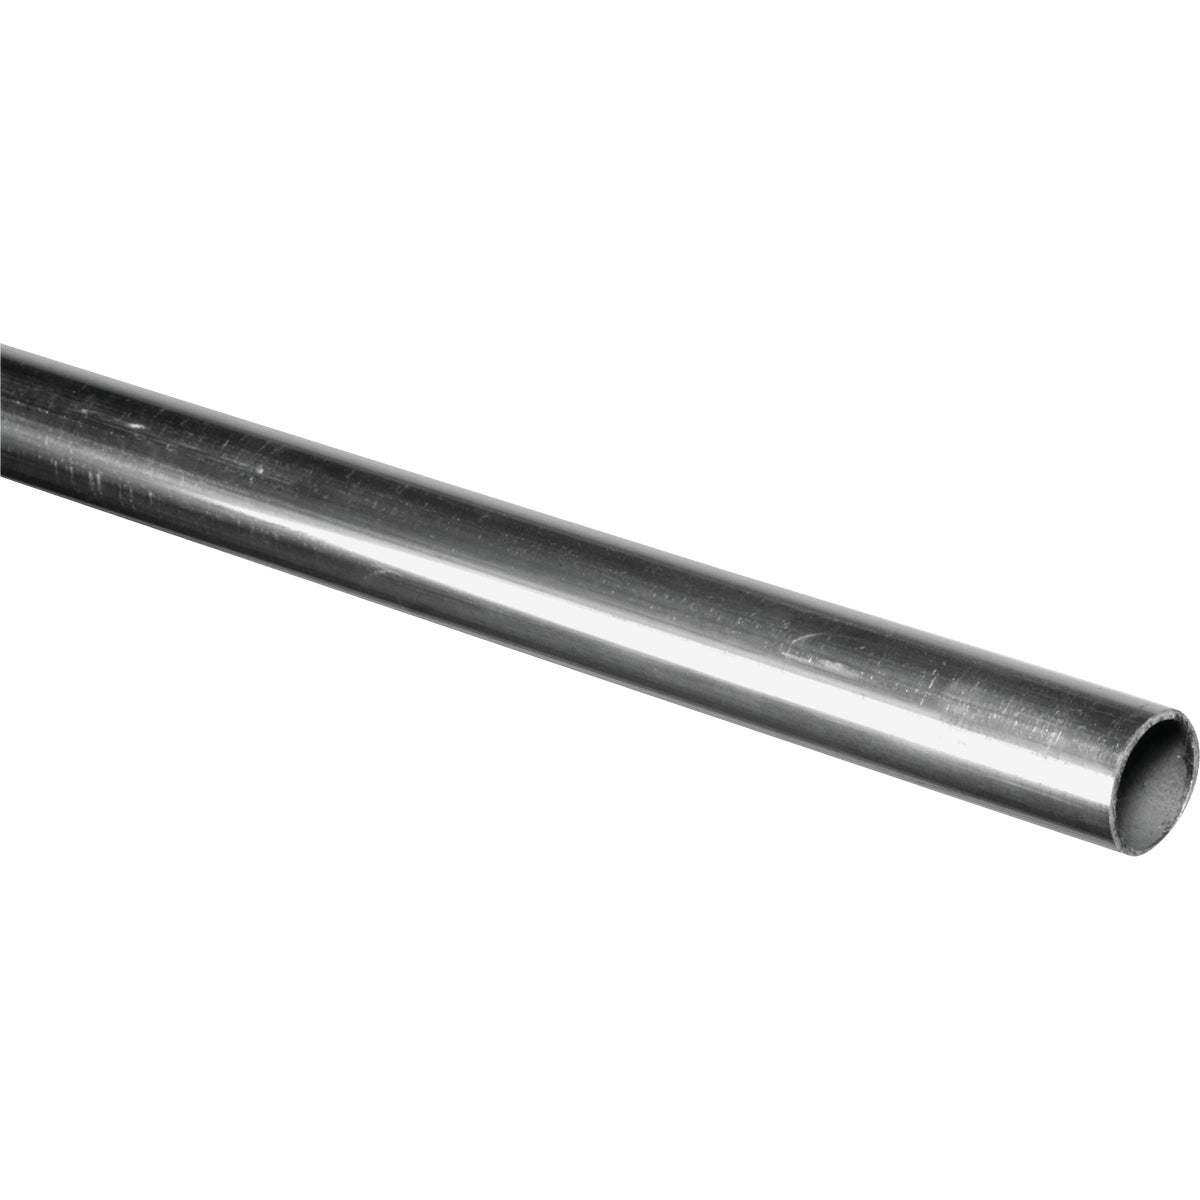 1X8' ALUM ROUND TUBE - N258483 by National Mfg Co